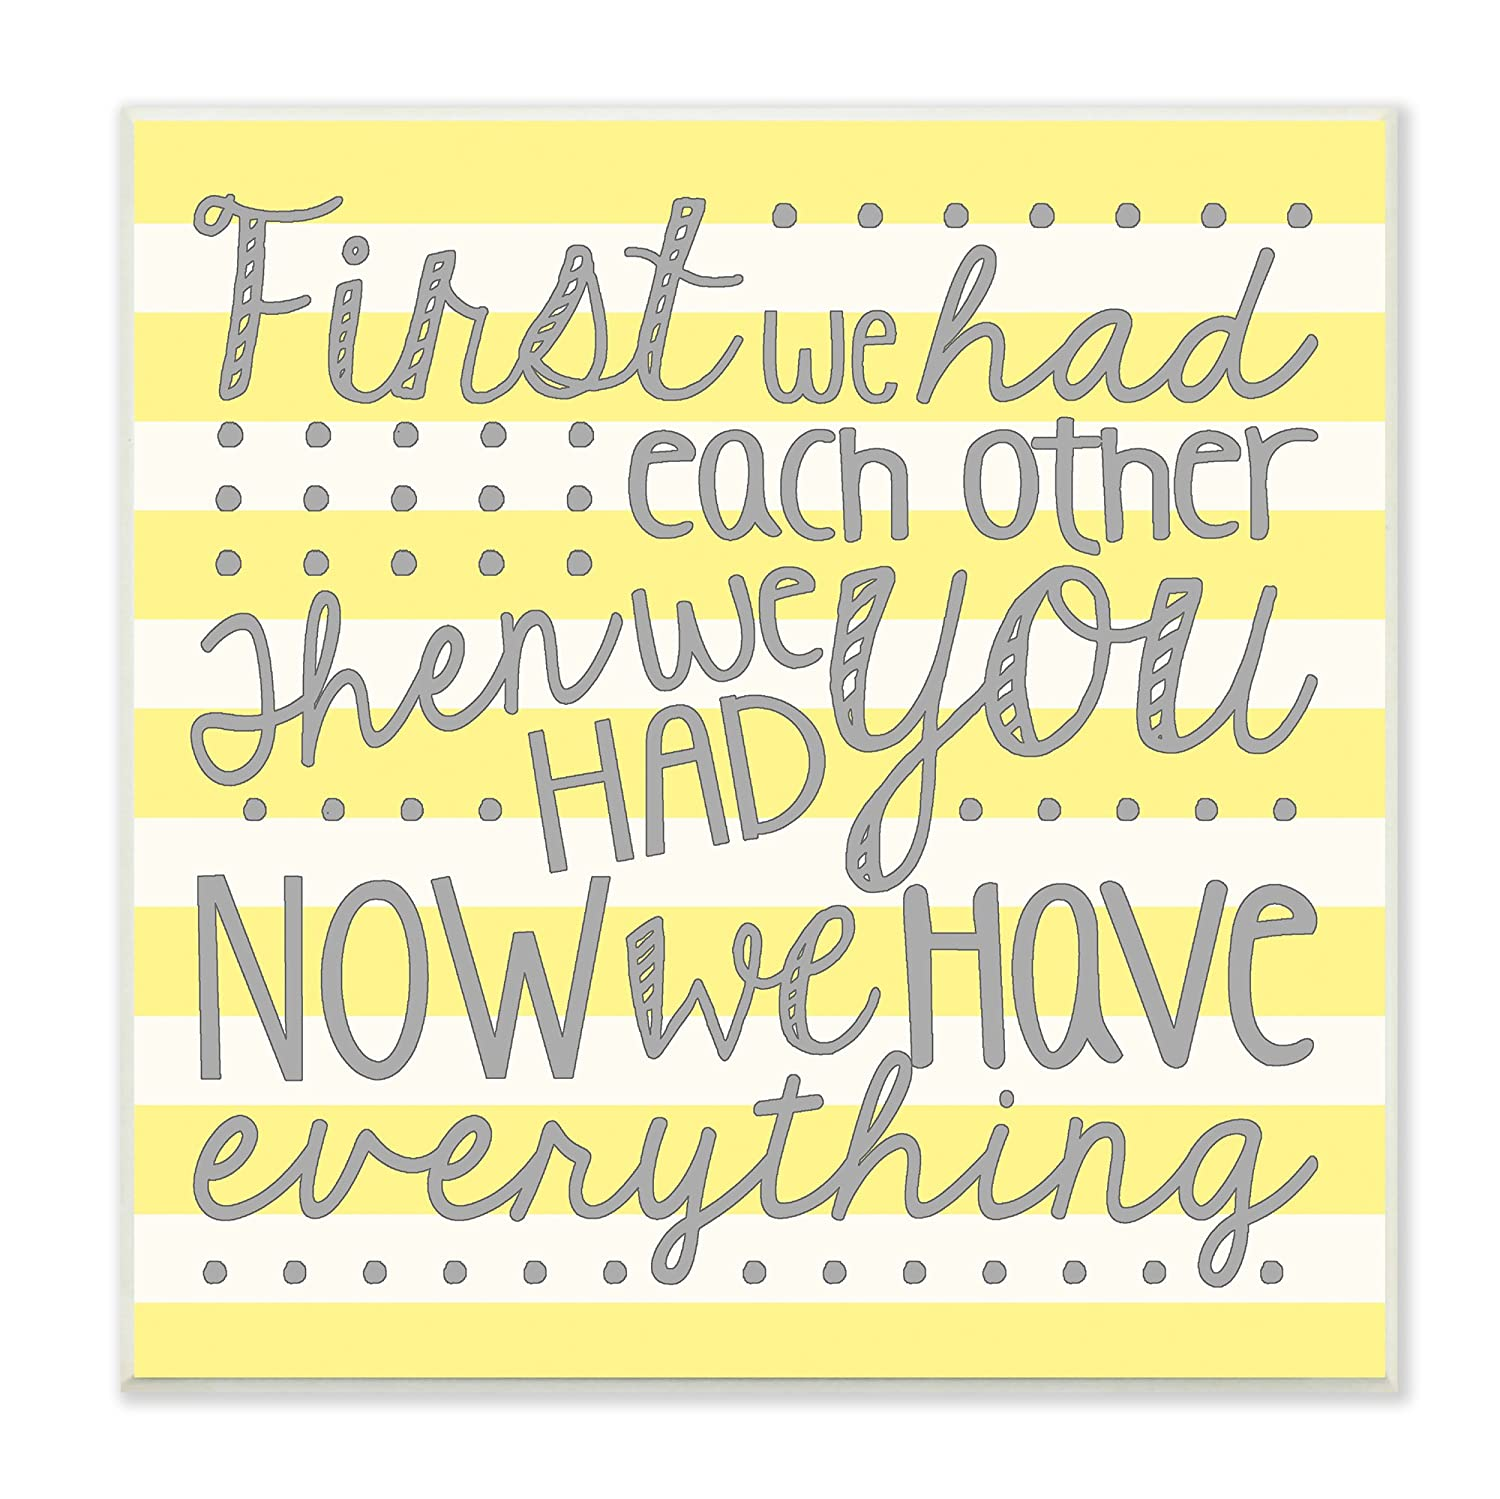 Stupell Home Décor First We Had Each Other Grey and Yellow Stripes Wall Plaque Art, 12 x 0.5 x 12, Proudly Made in USA Stupell Industries brp-1744_wd_12x12